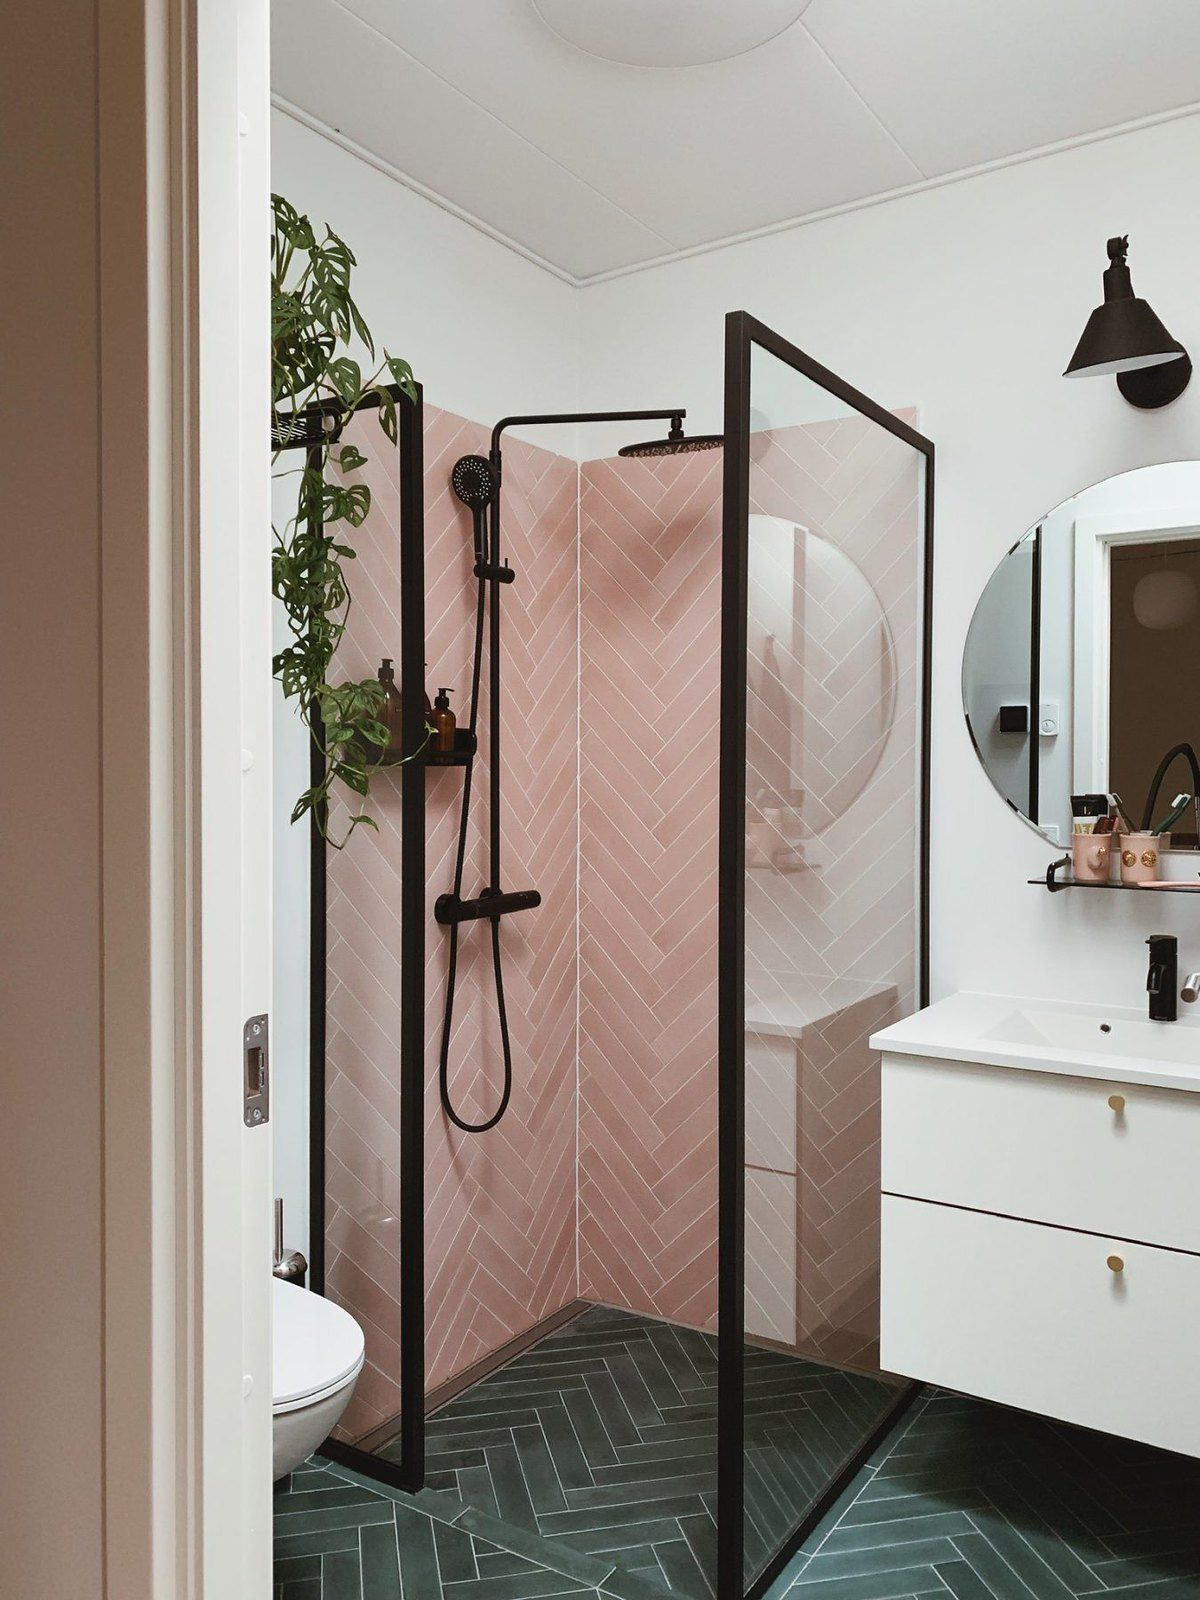 10 Small Bathrooms that Inspired my Renovation - living after